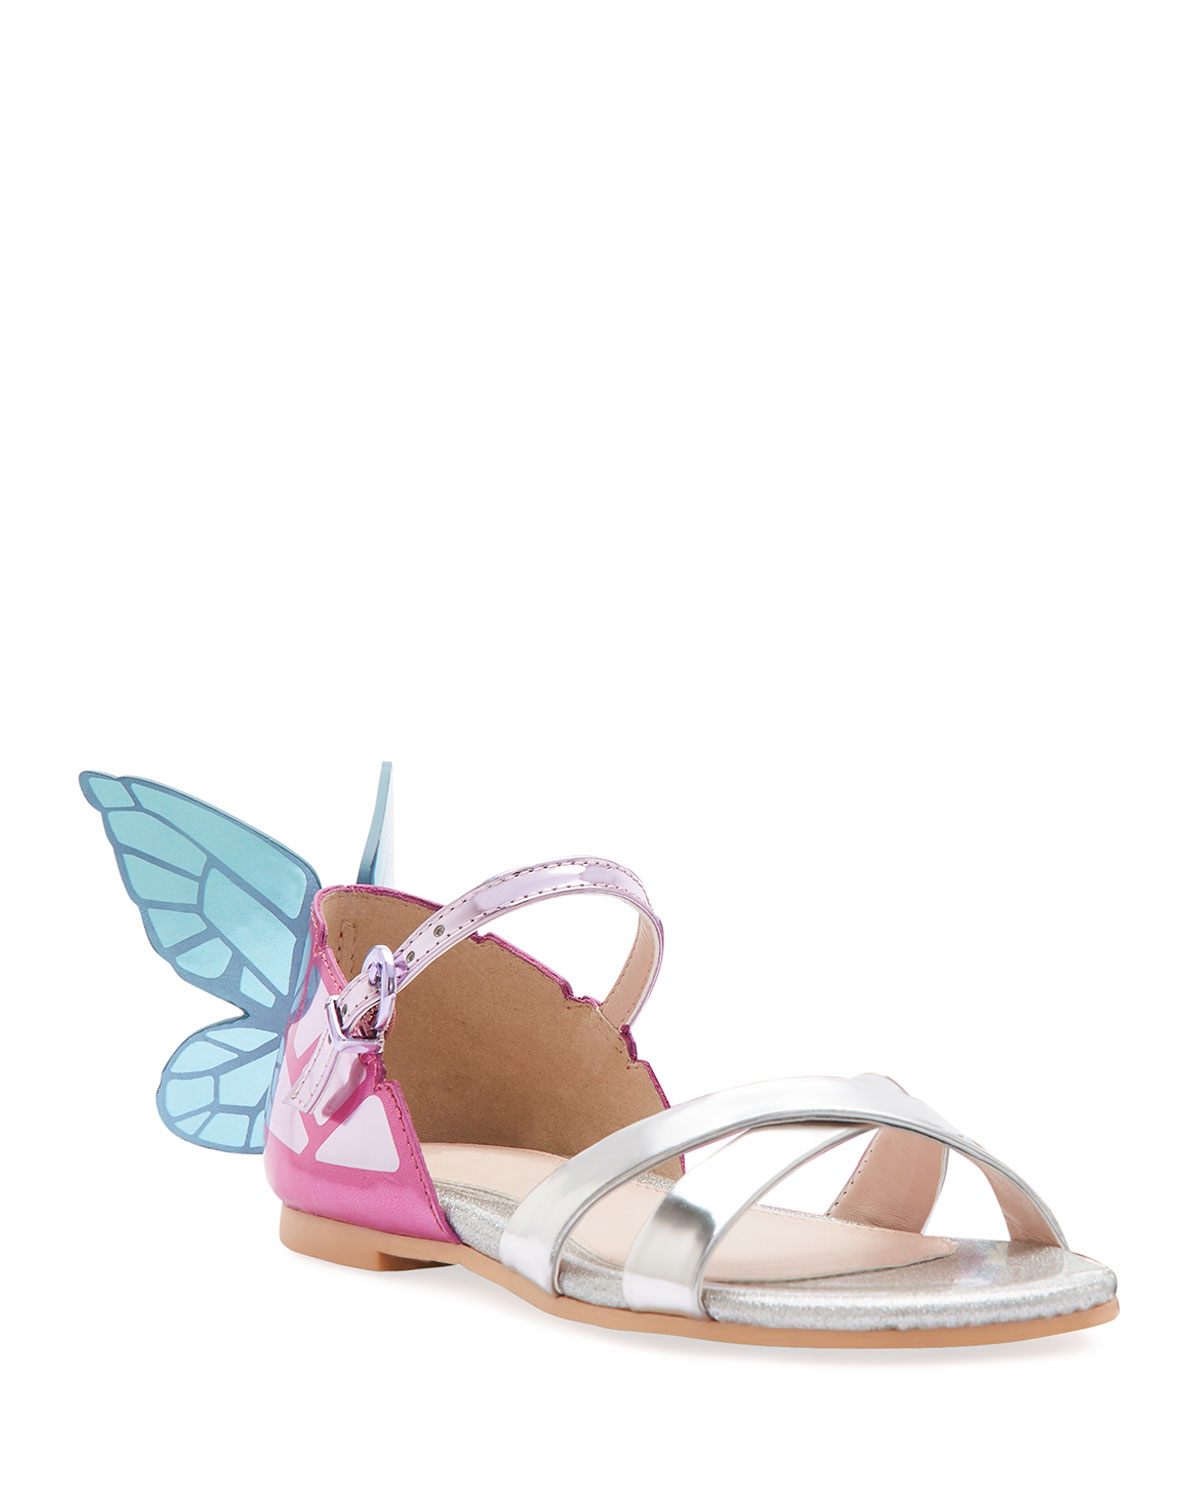 Chiara Mirrored Leather Butterfly Sandals, Toddler/Kids by Sophia Webster